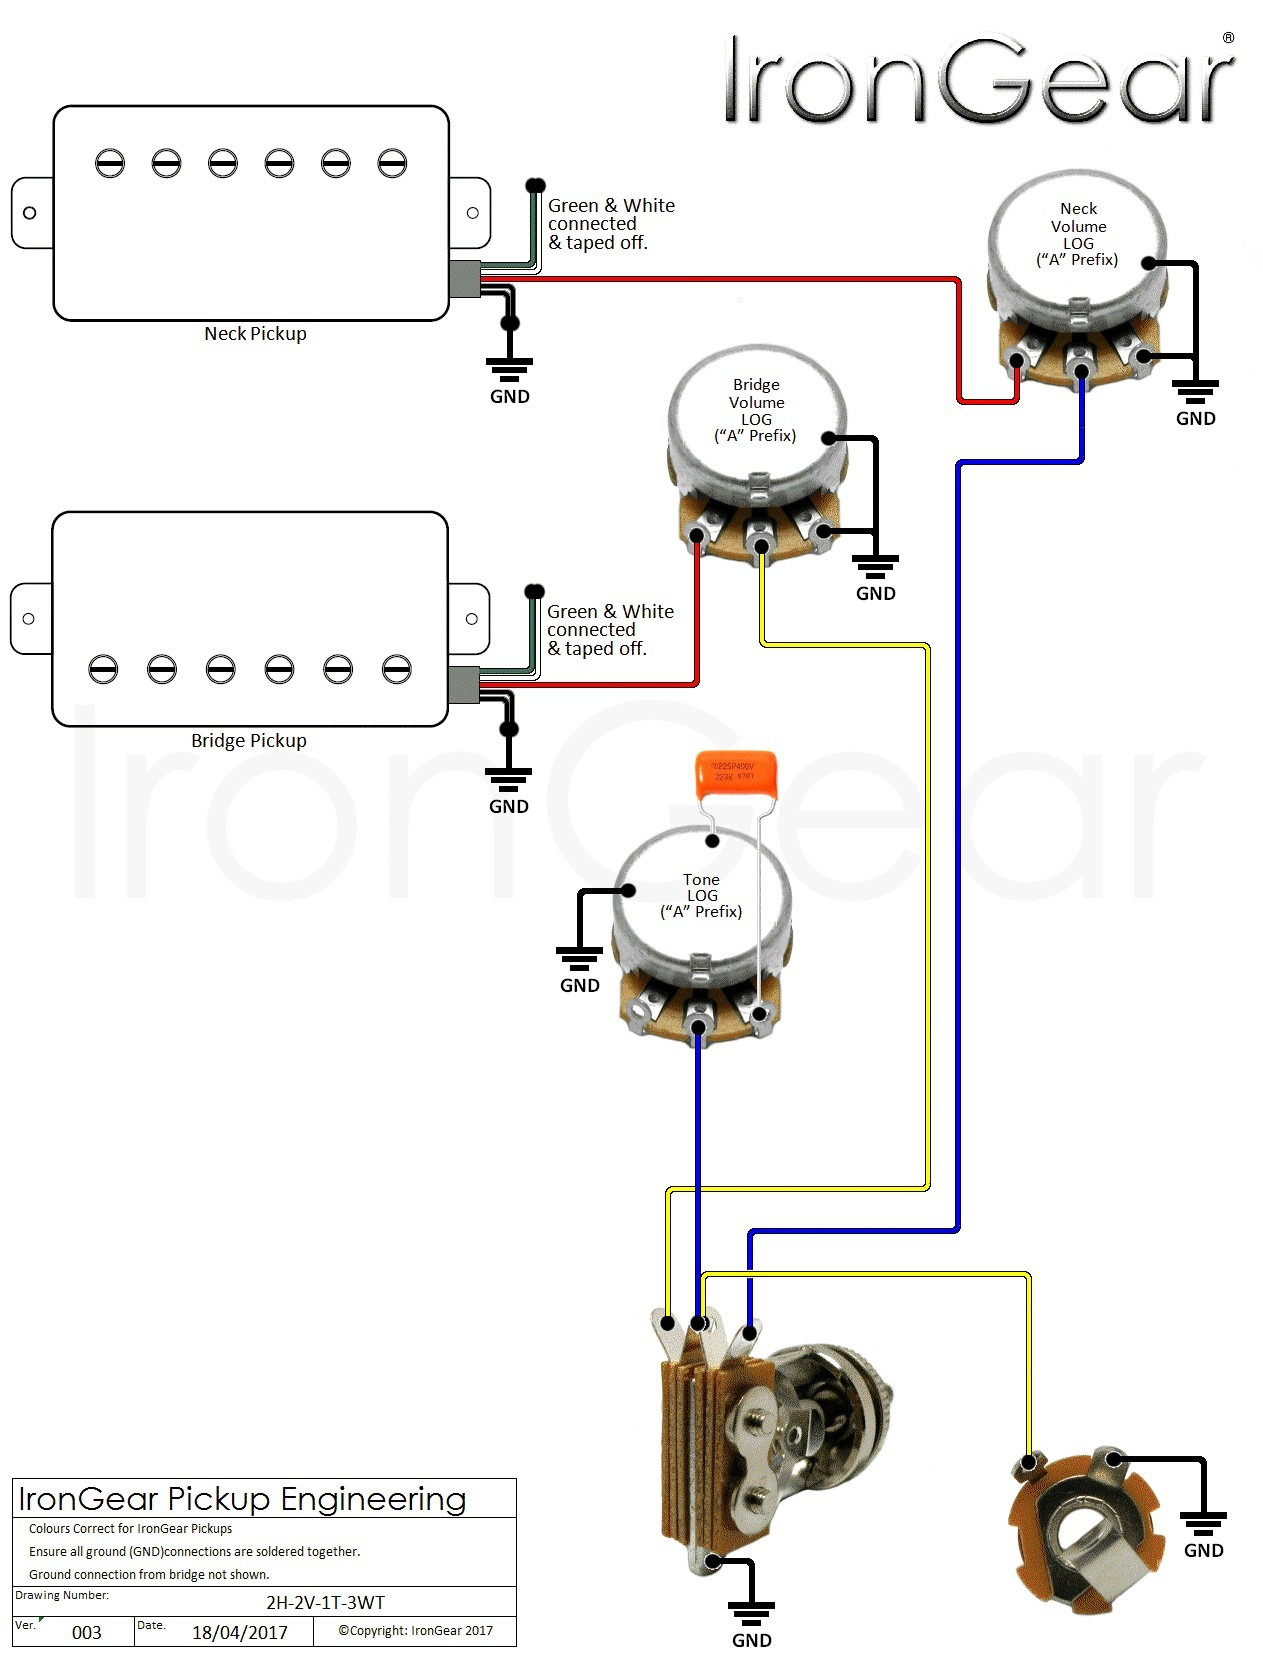 Les Paul Switch Wiring Diagram Fresh Wiring Diagram for 2 Humbuckers tone Volume 3 Way Switch